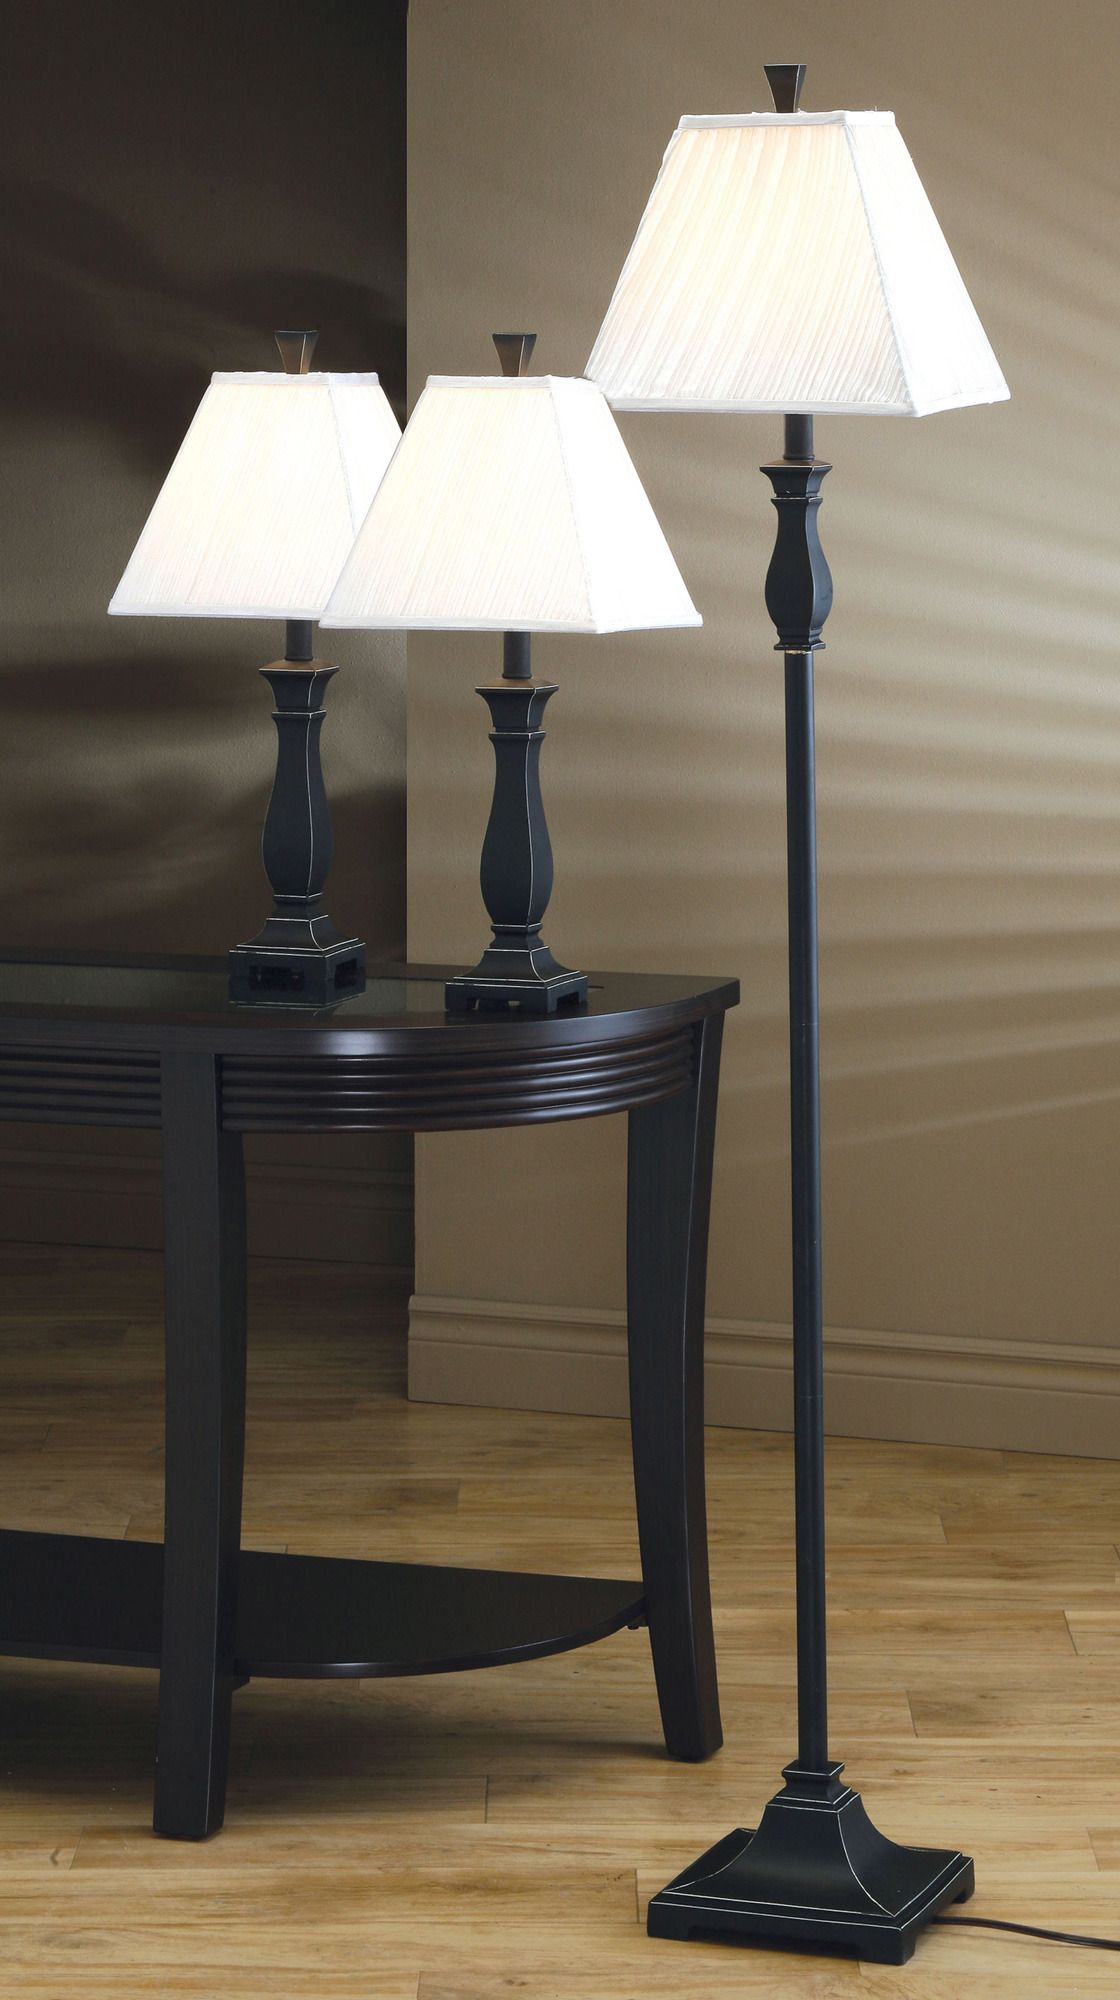 3 Piece Lamp Set Coaster Furniture Home Gallery Stores Black